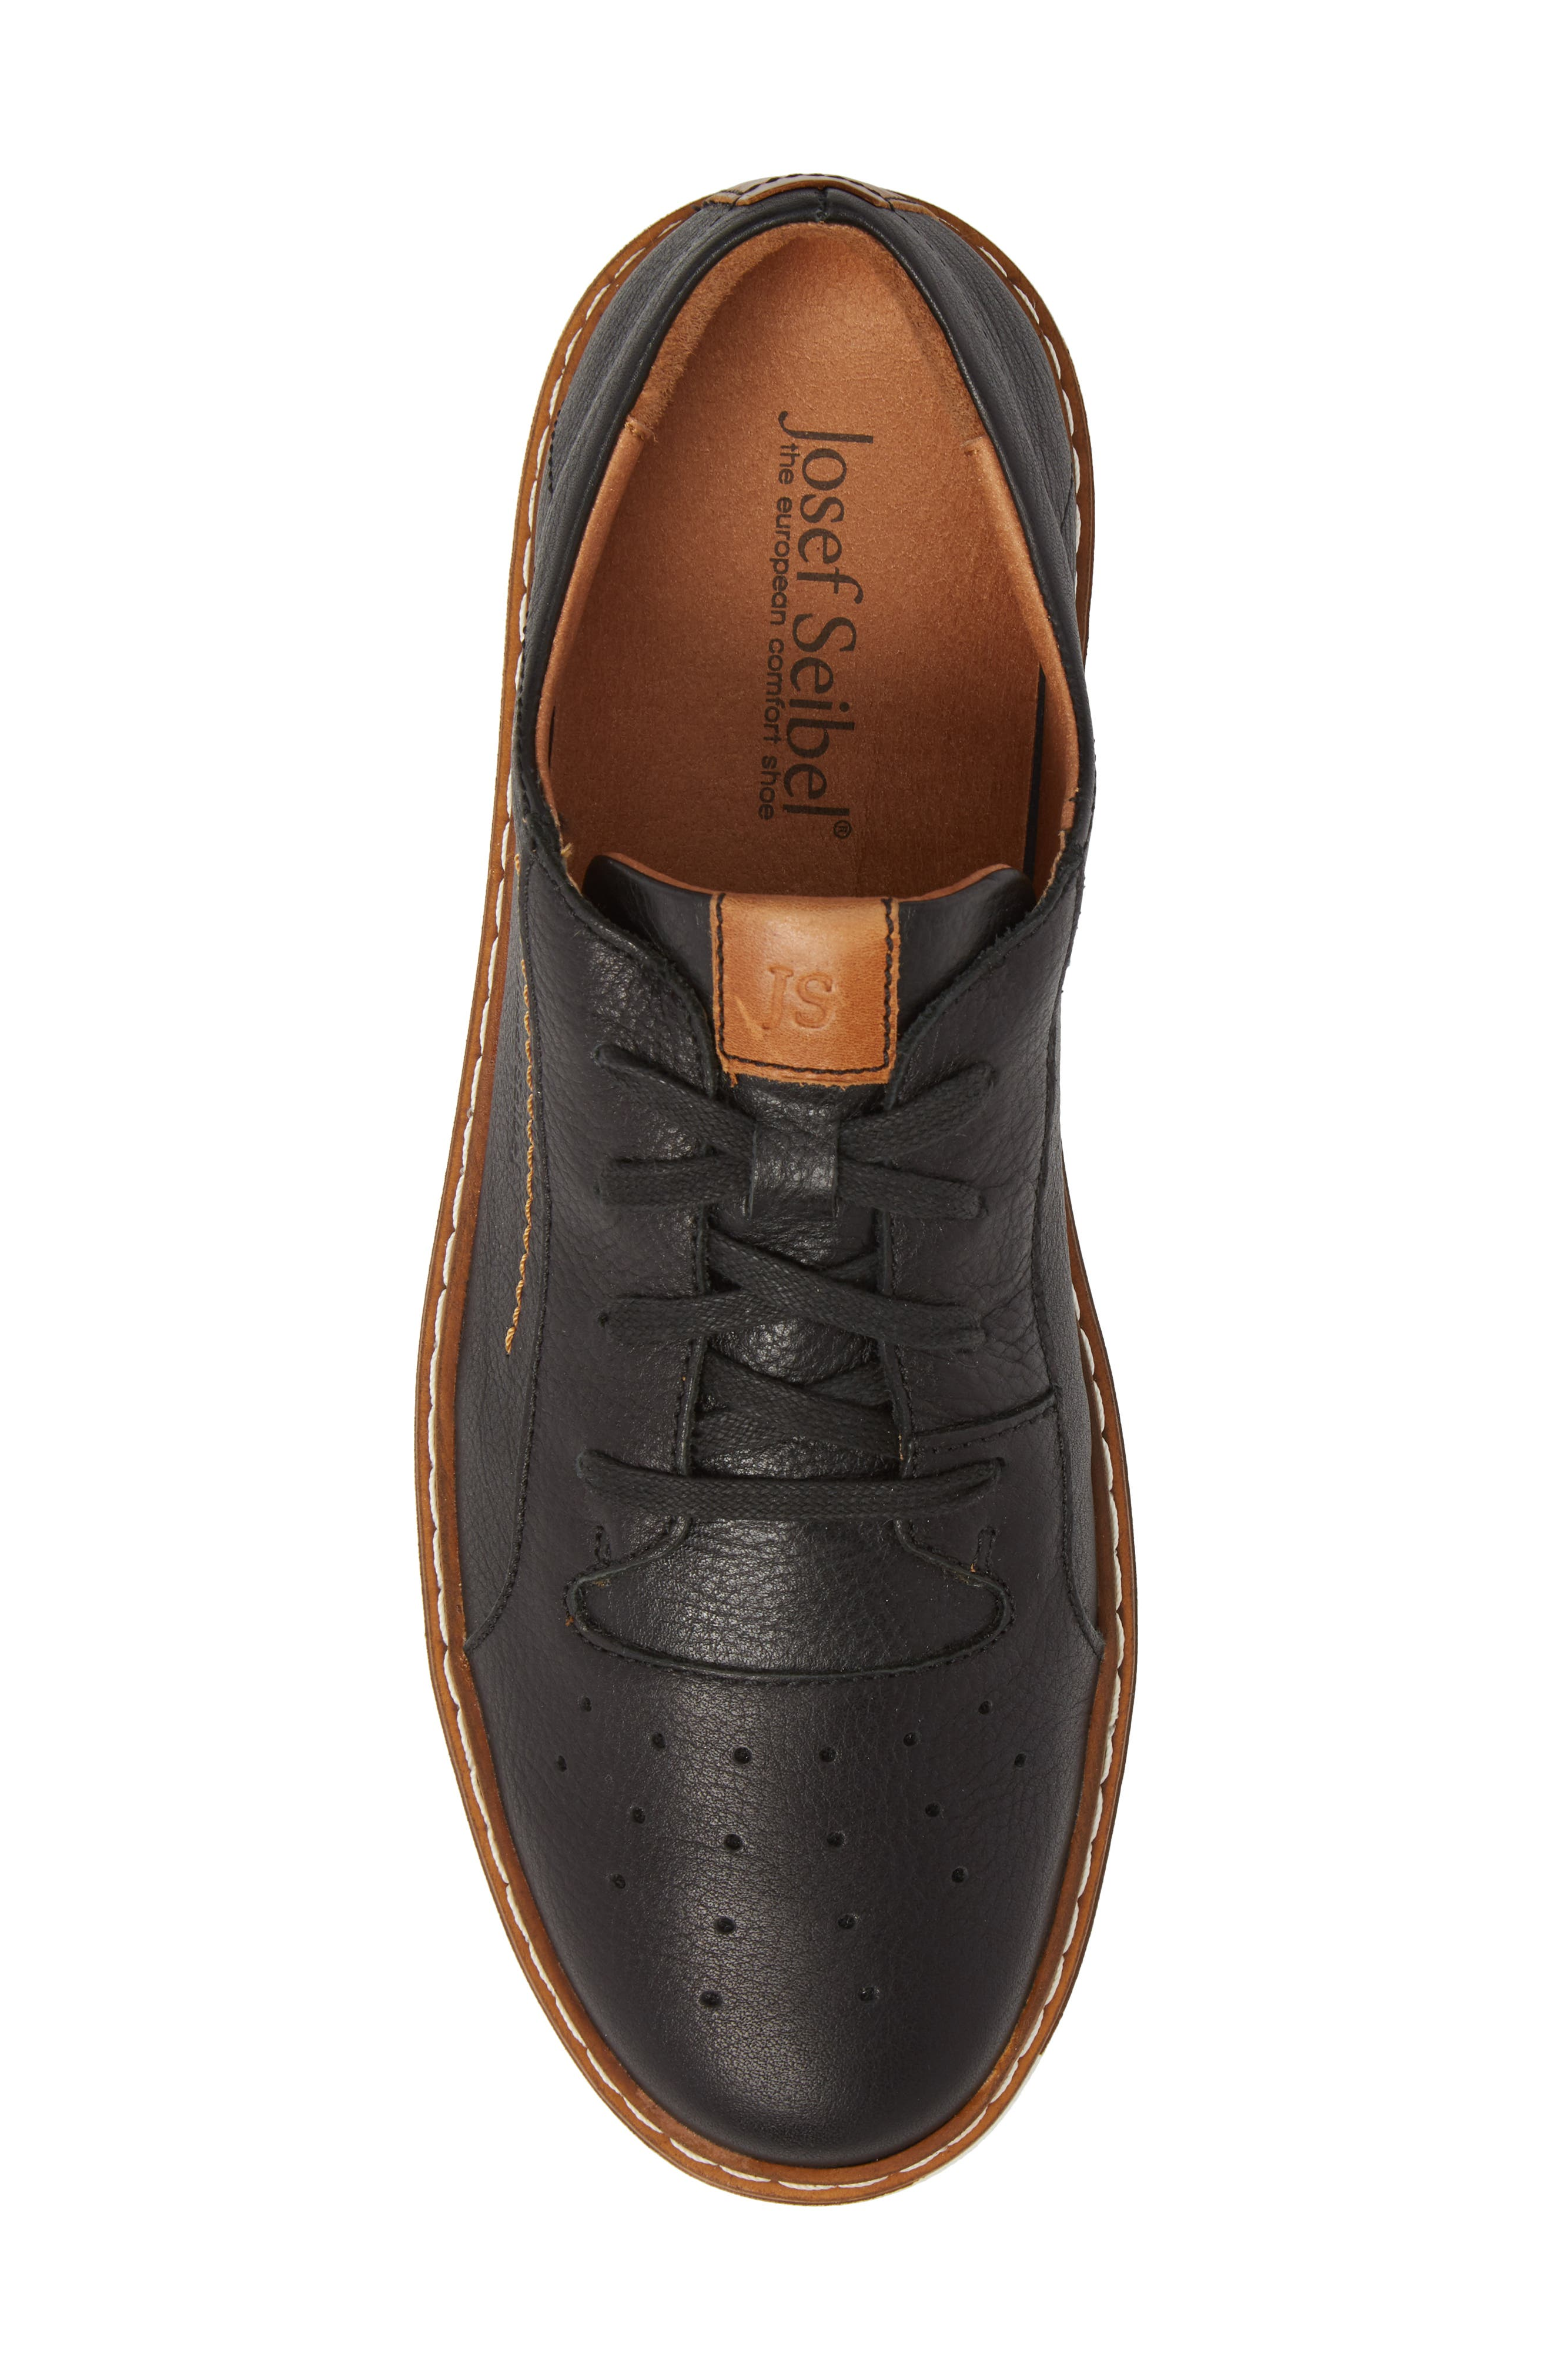 Quentin 03 Low Top Sneaker,                             Alternate thumbnail 5, color,                             BLACK KOMBI LEATHER